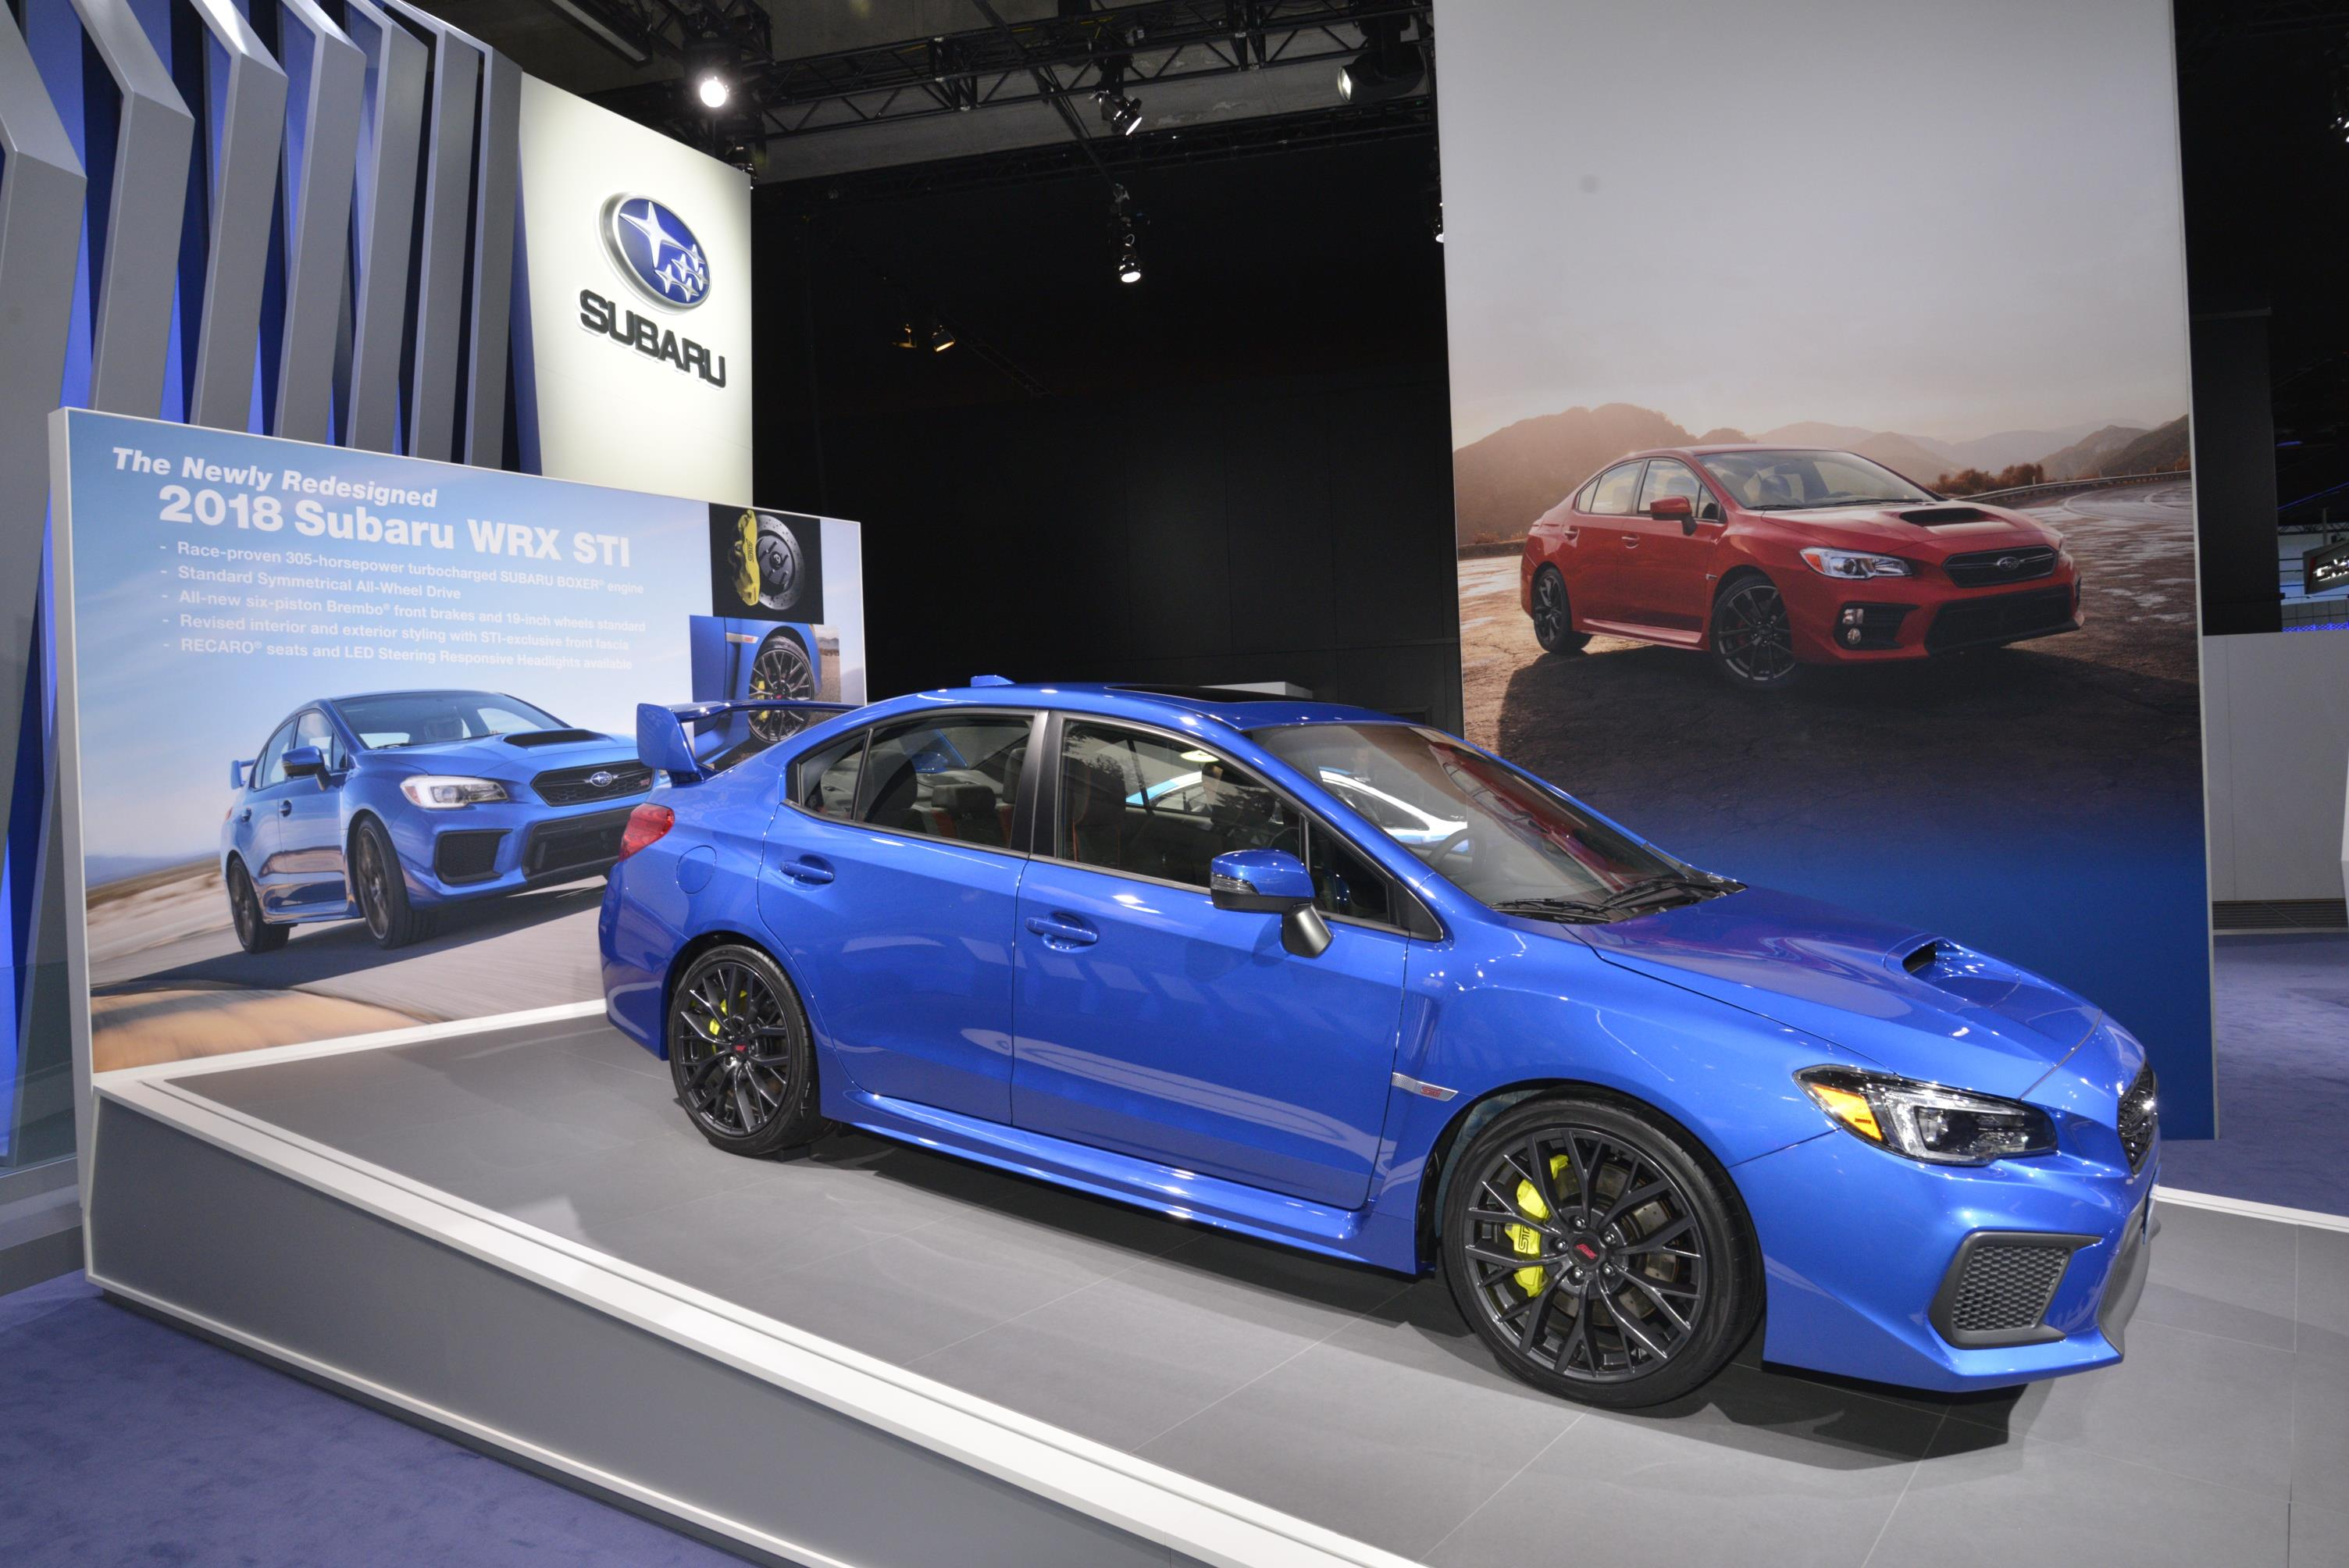 2018 Subaru Wrx And Sti Live From Detroit